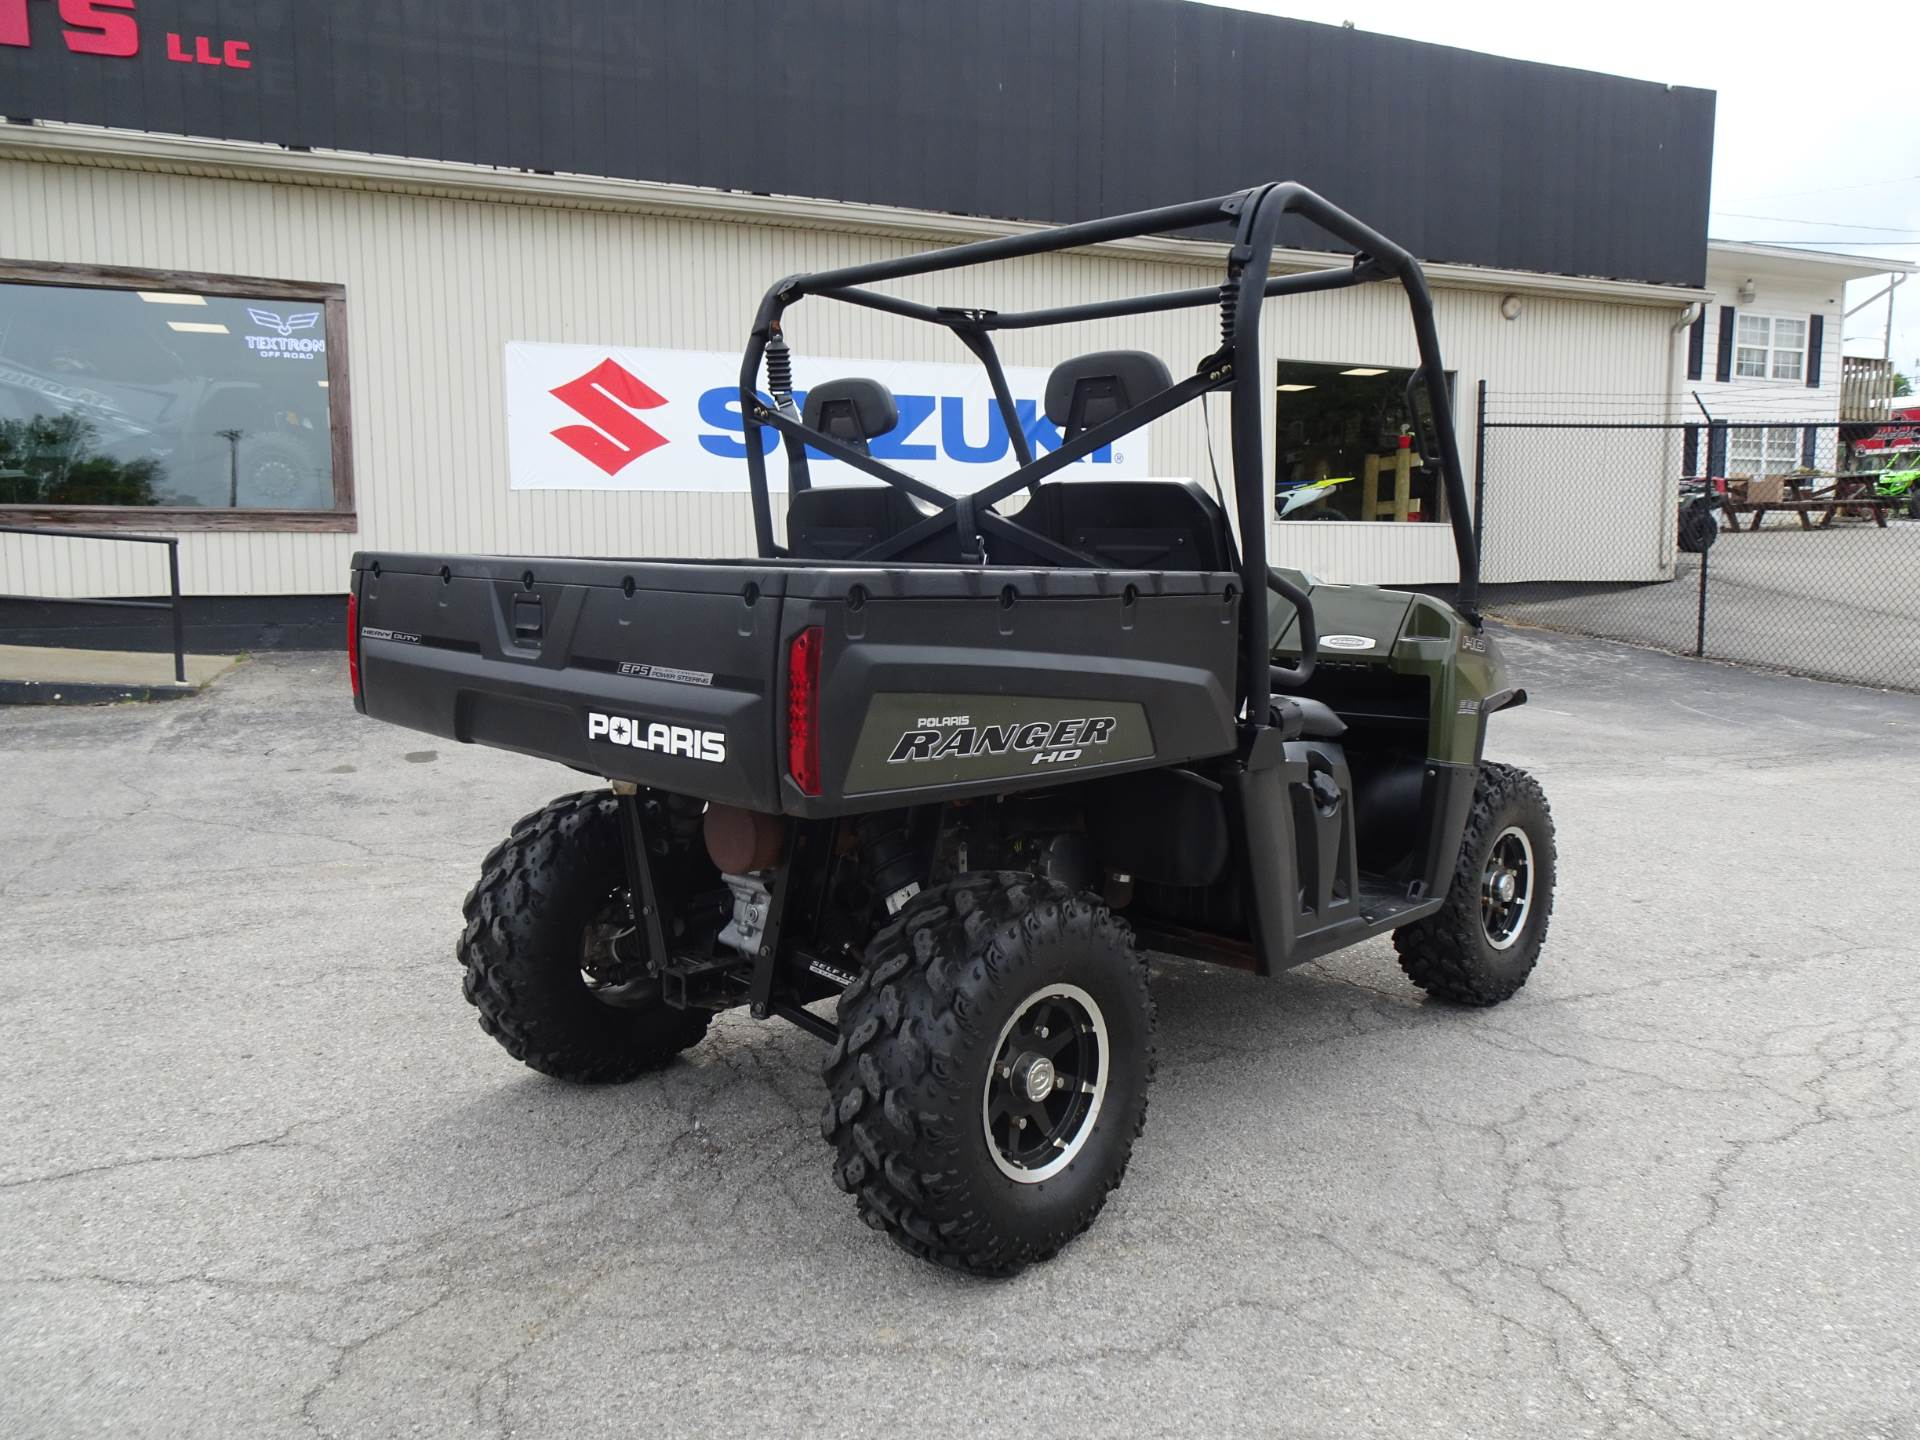 2012 Polaris Ranger® HD 800 in Georgetown, Kentucky - Photo 3